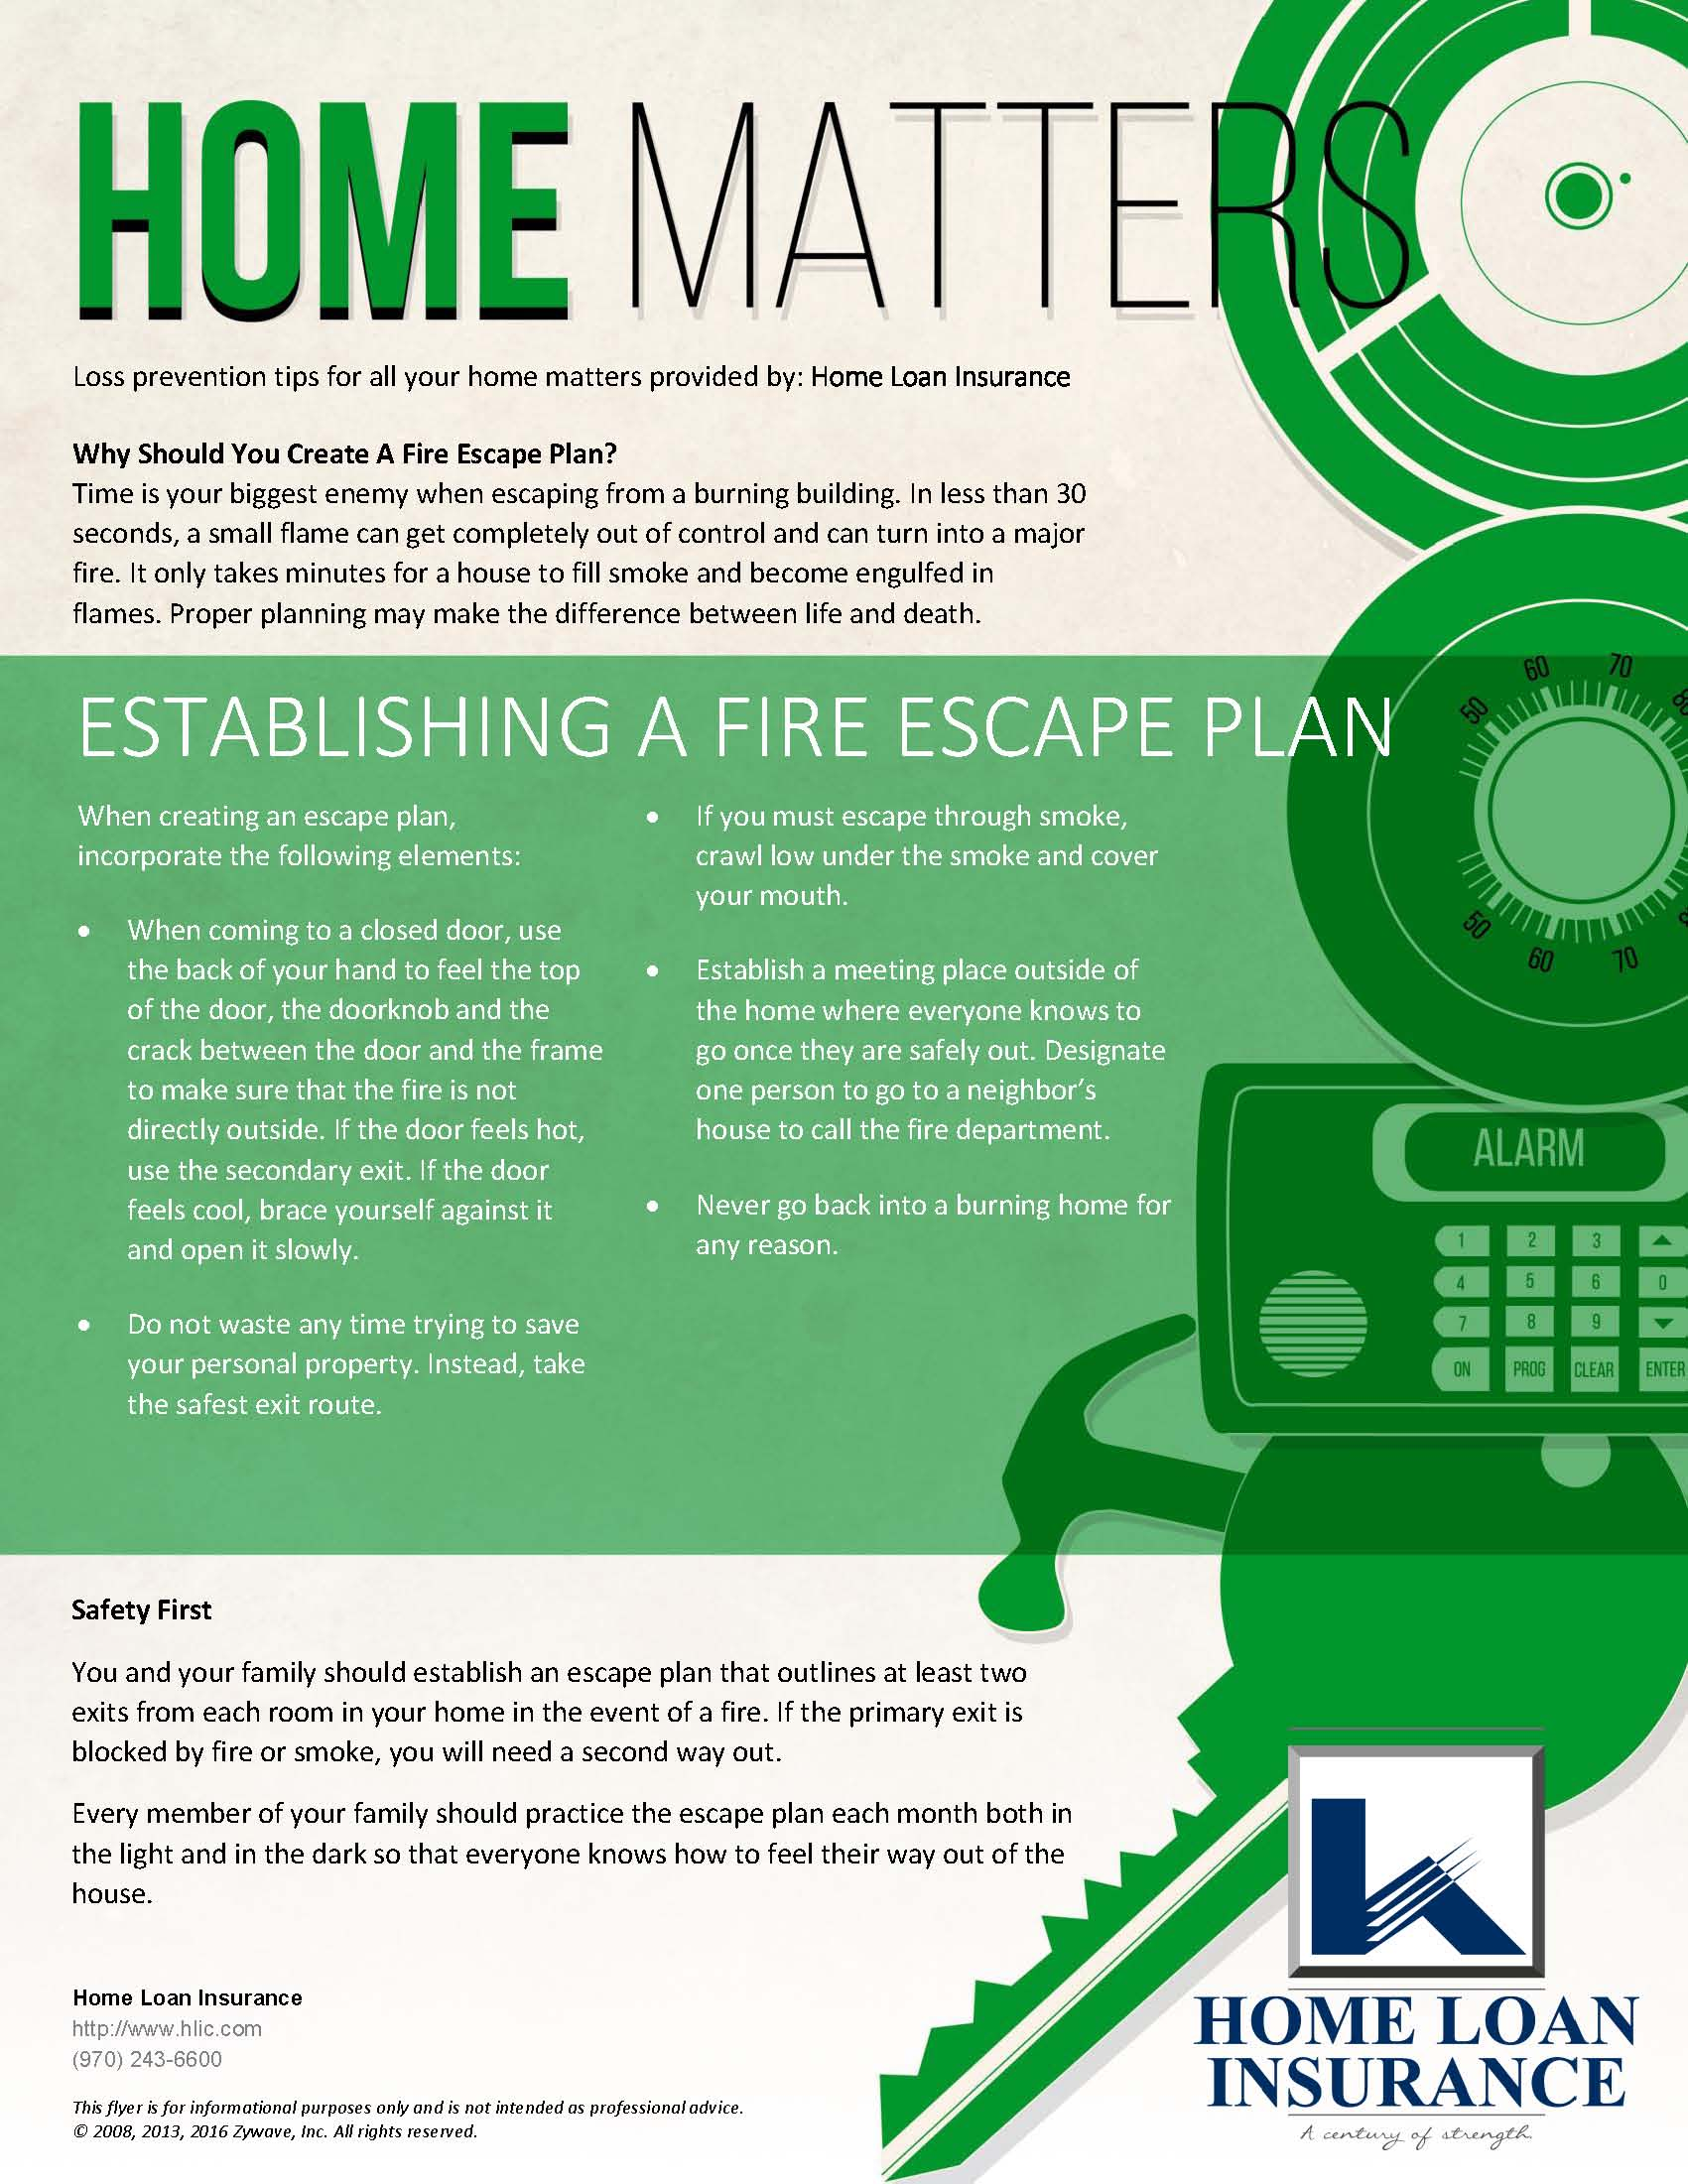 Establishing a Fire Escape Plan for your Family